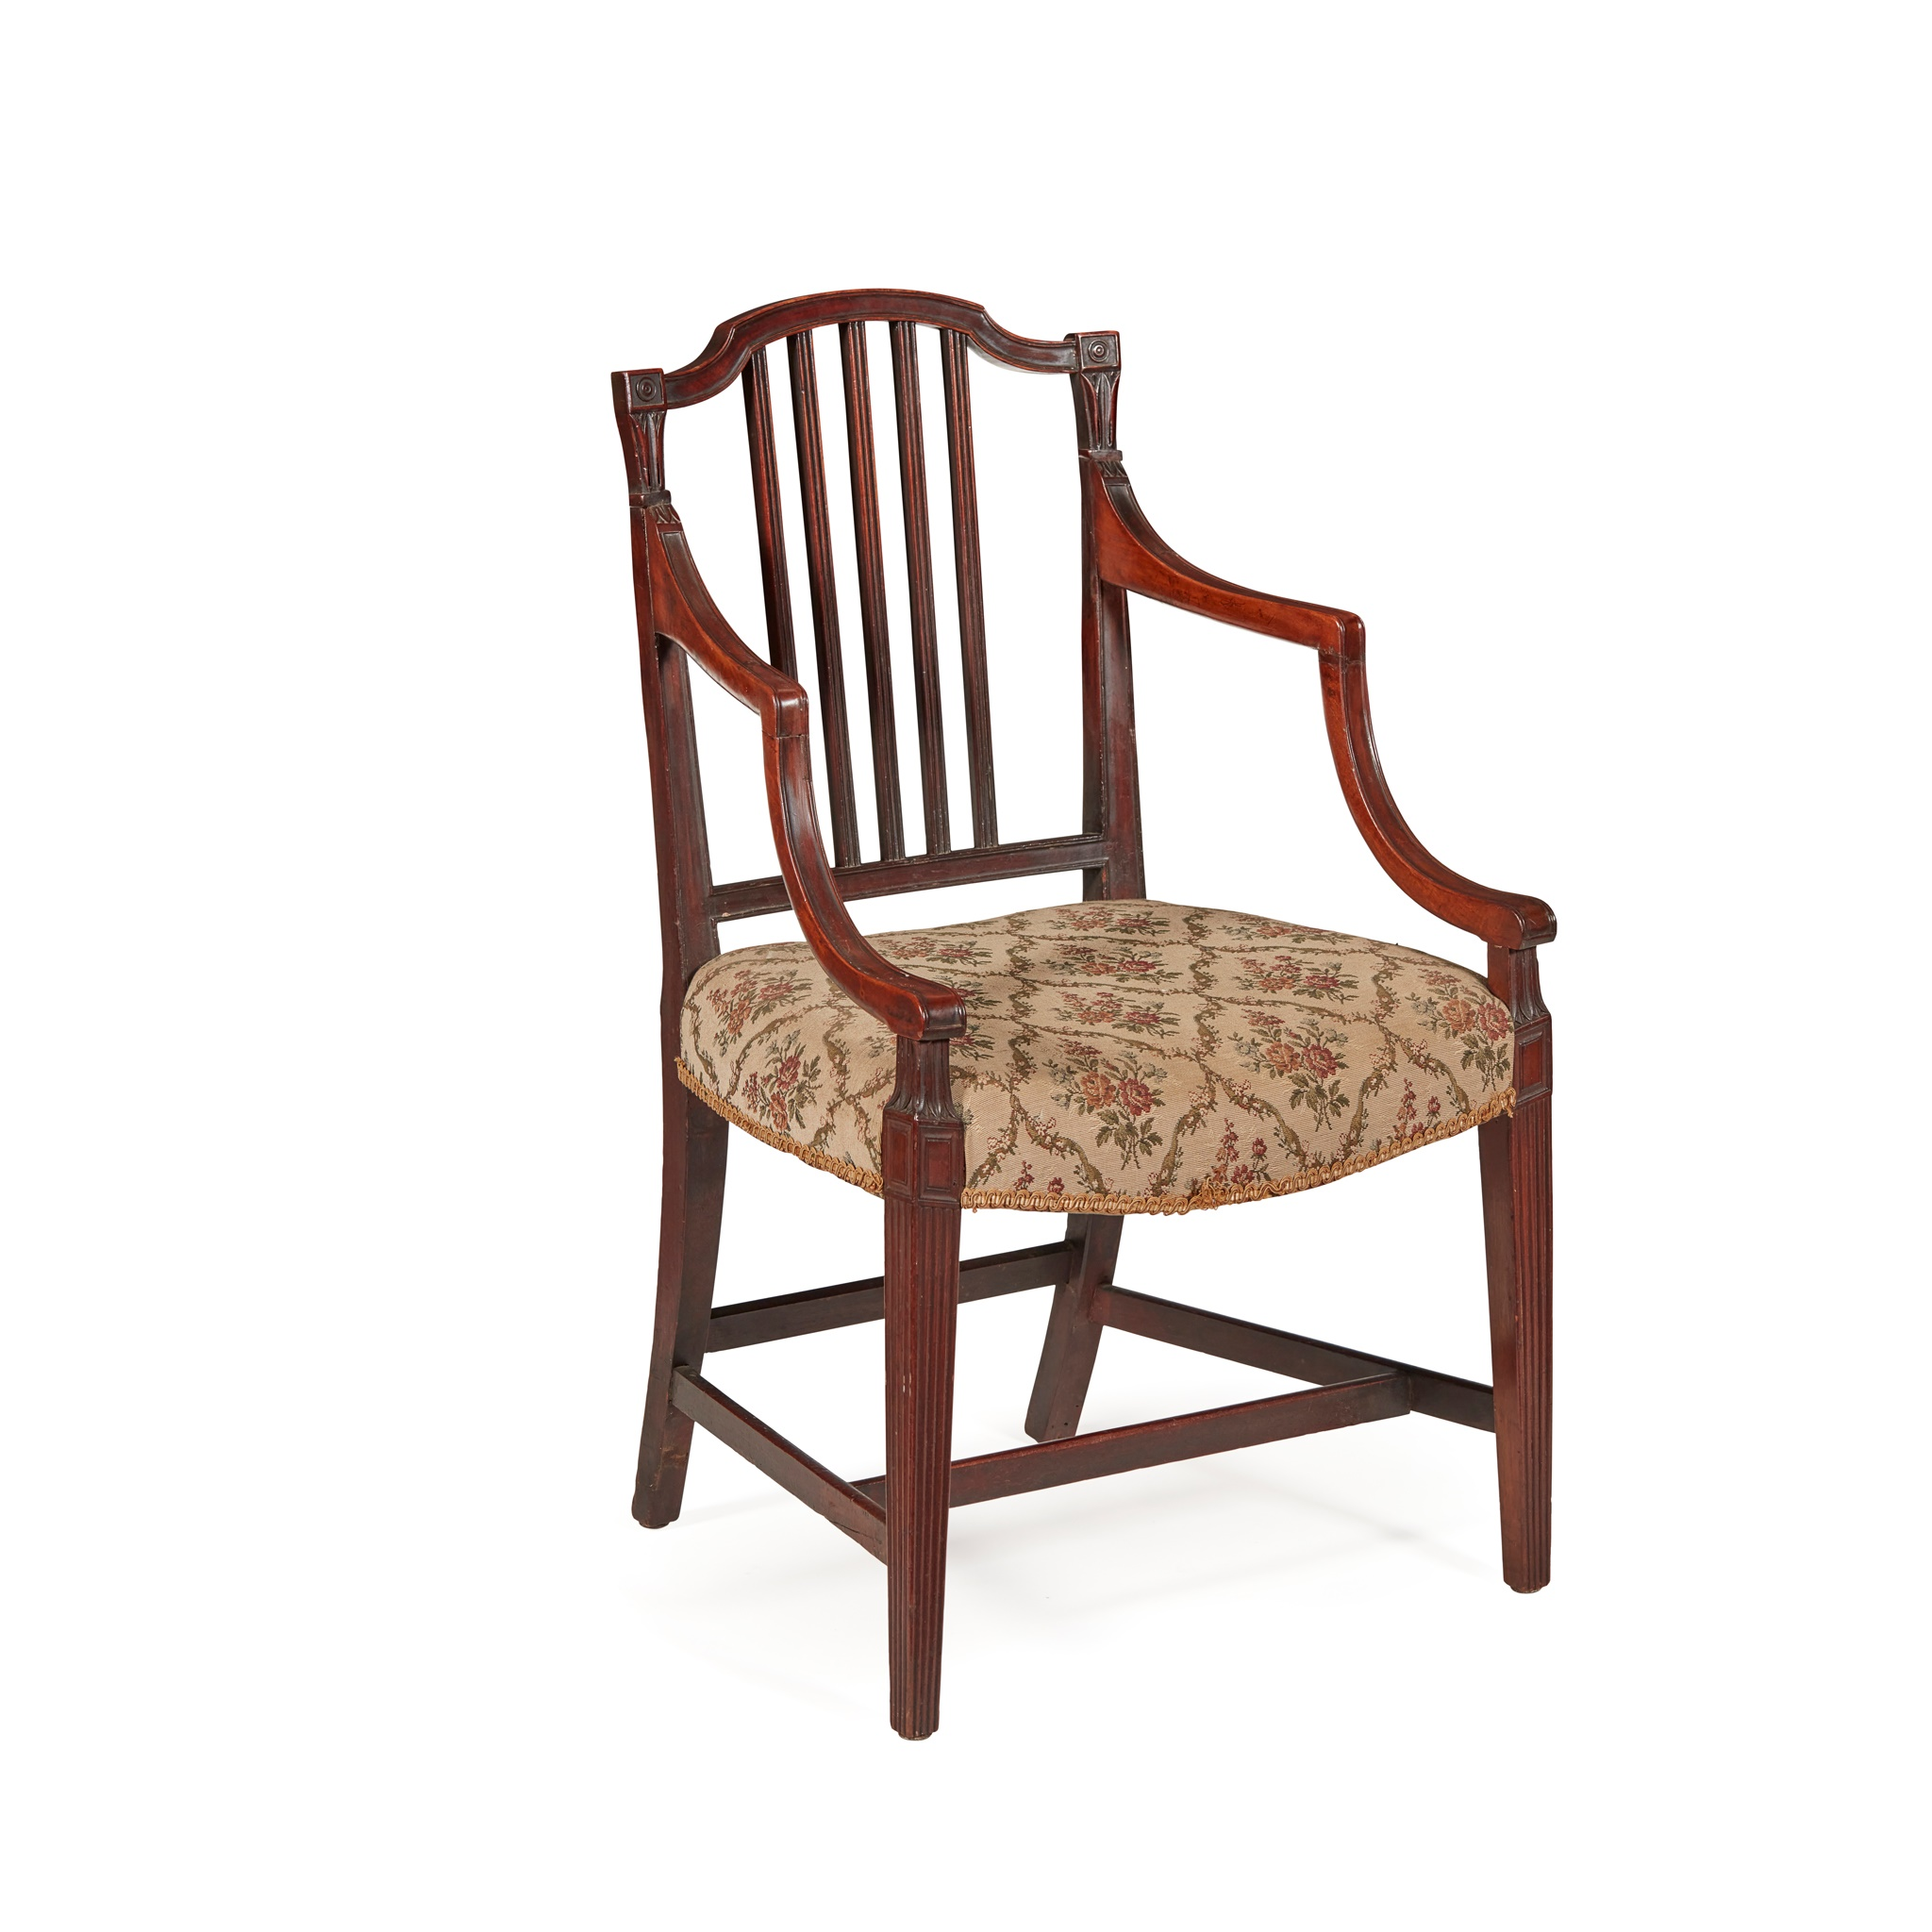 GEORGE III MAHOGANY OPEN ARMCHAIR LATE 18TH CENTURY - Image 2 of 2